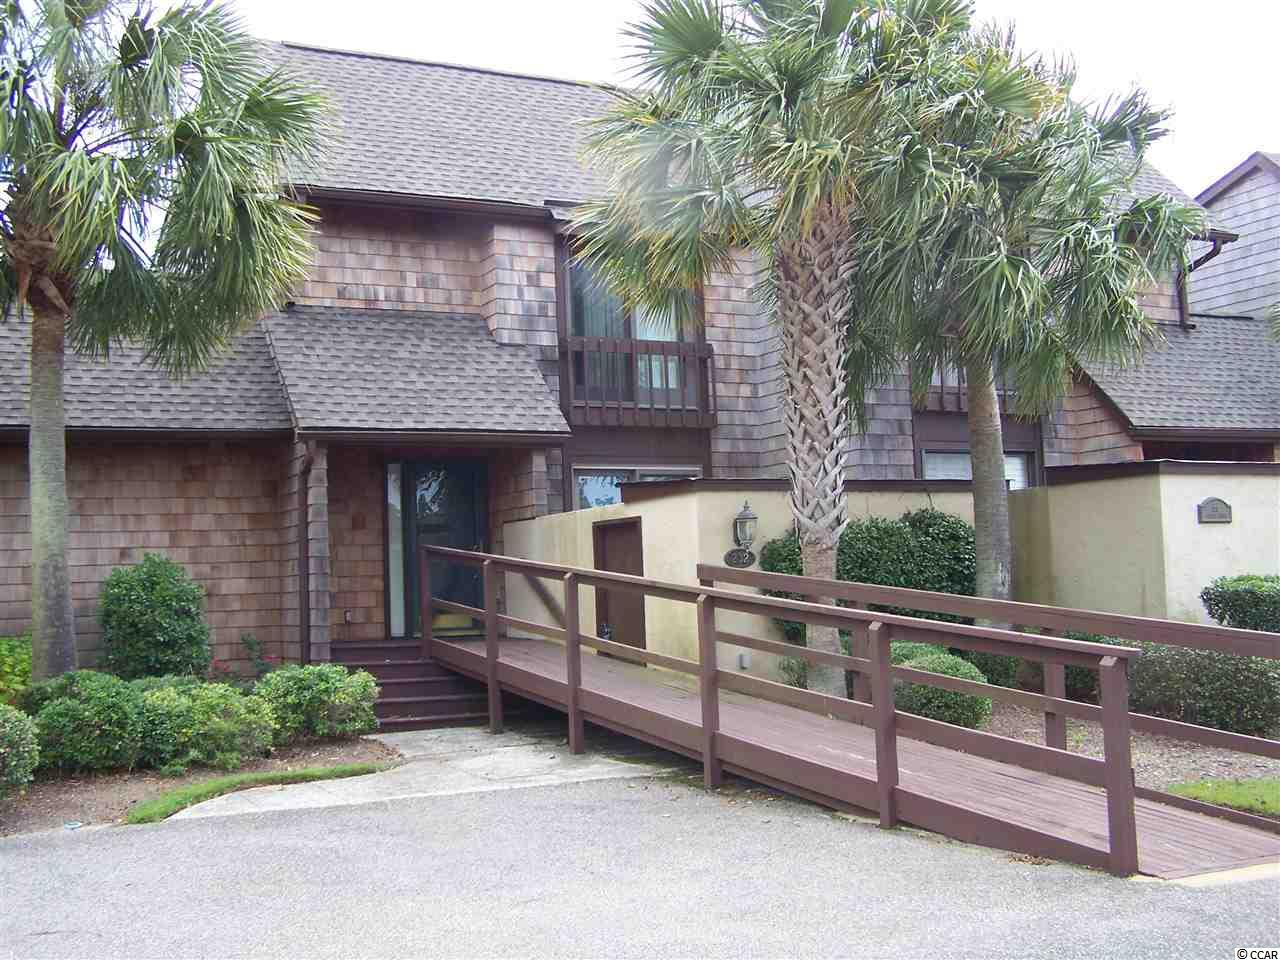 Beautiful 3 bedroom 2 bath condo in historic Belle Isle Yacht Club right on Winyah Bay with an unobstructed view of the Waccamaw River Bridge to Pawleys Island. In the evening watch the sun reflect off the historic Georgetown Light House or just sit on the deck and count the boats as they travel up and down the Intracoastal Waterway.   This unit has been updated with granite and a open floor plan with a downstairs bedroom suite with a walk-in shower. Additional upgrades include a new rood and Cedar siding.Sliding glass doors across the back of the unit give you a full view of the beautiful bay. Amenities include a private gated beach house on Pawleys Island, 2 pools, tennis and marina.